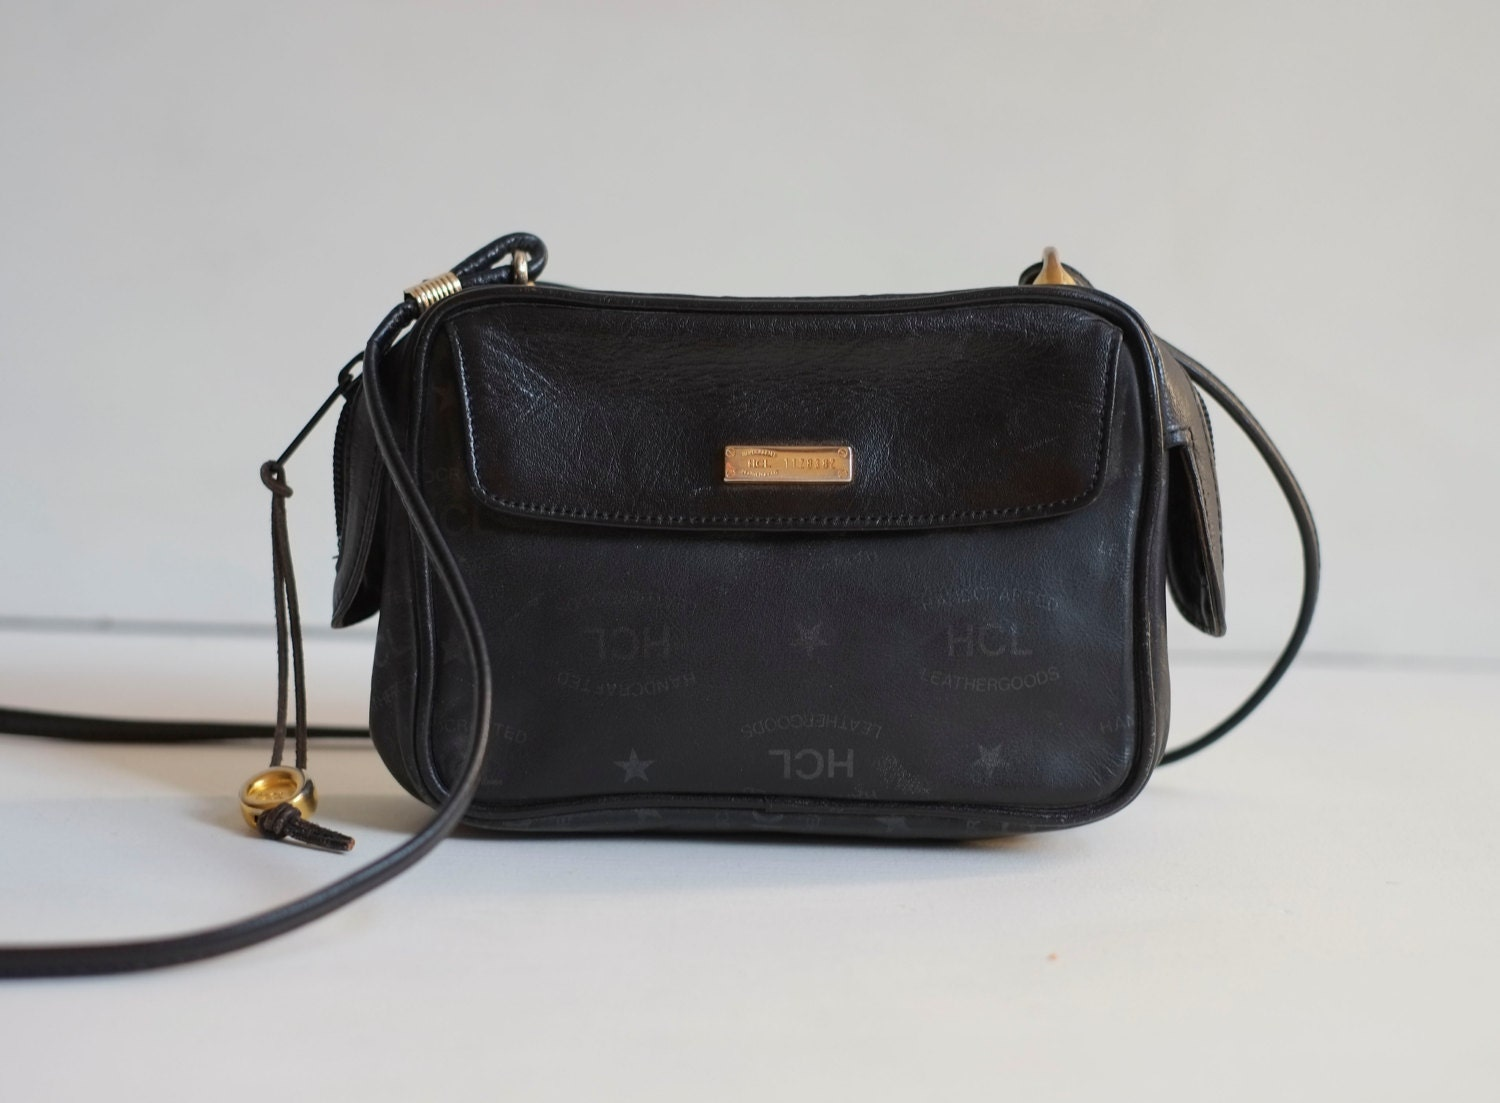 Hcl handcrafted leather goods -  Zoom